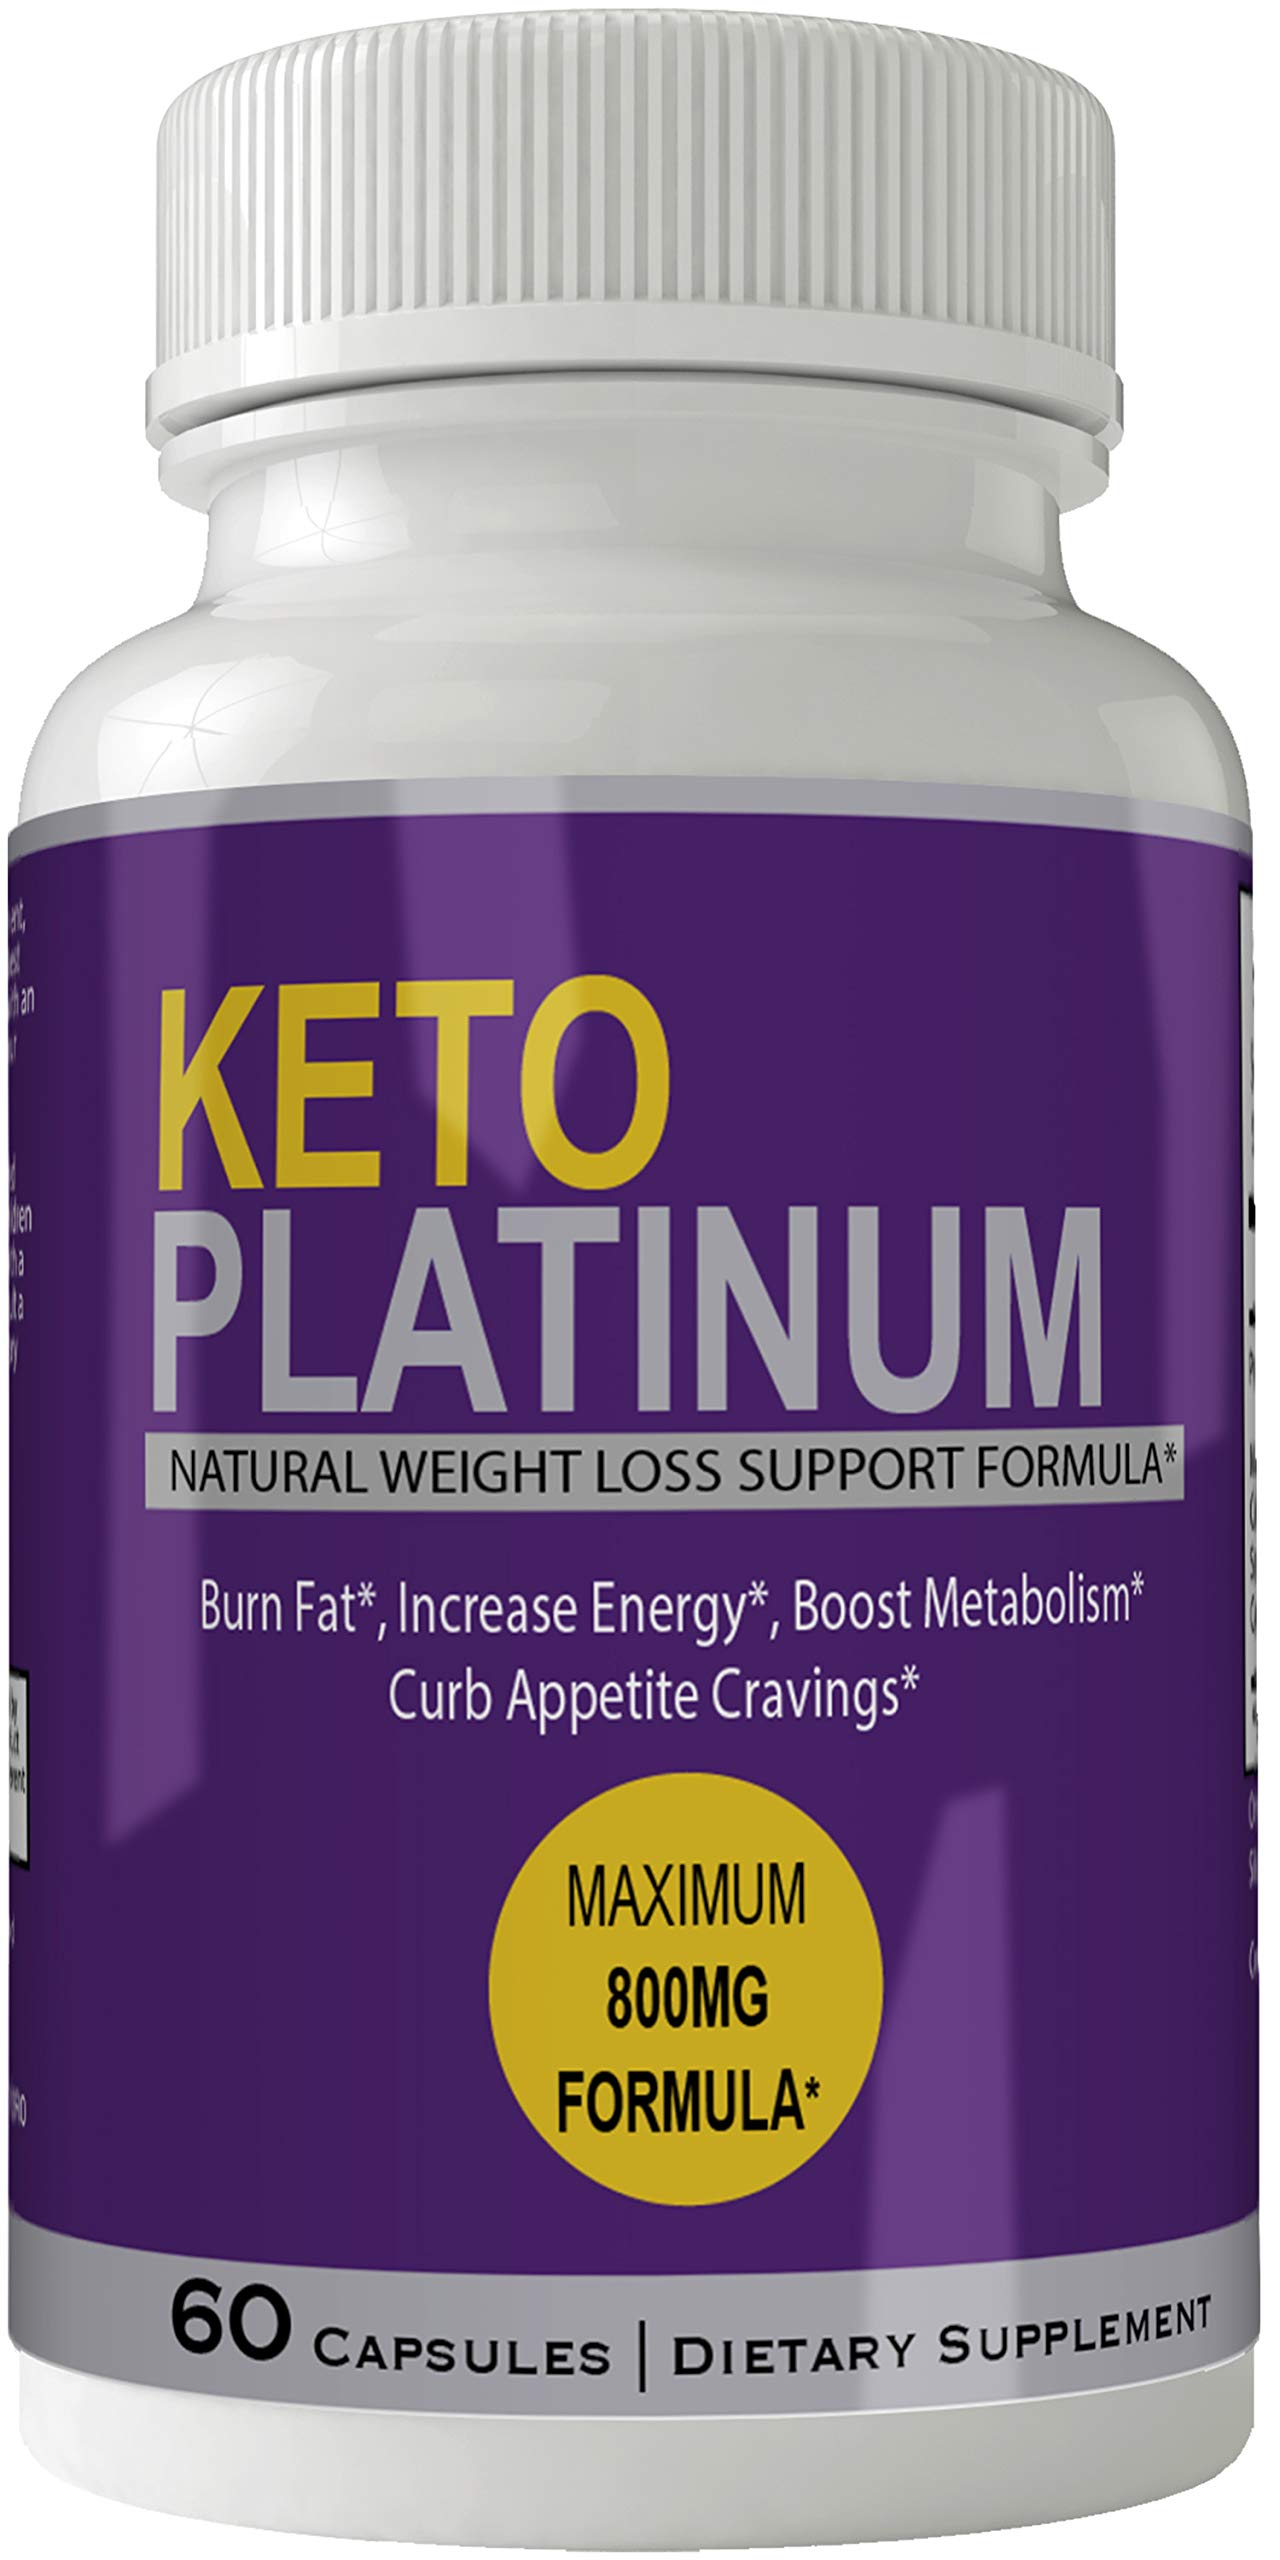 Keto Platinum Pills Advance Weight Loss Supplement Appetite Suppressant Natural Ketogenic 800 mg Formula with BHB Salts Ketone Diet Capsules to Boost Metabolism, Energy and Focus